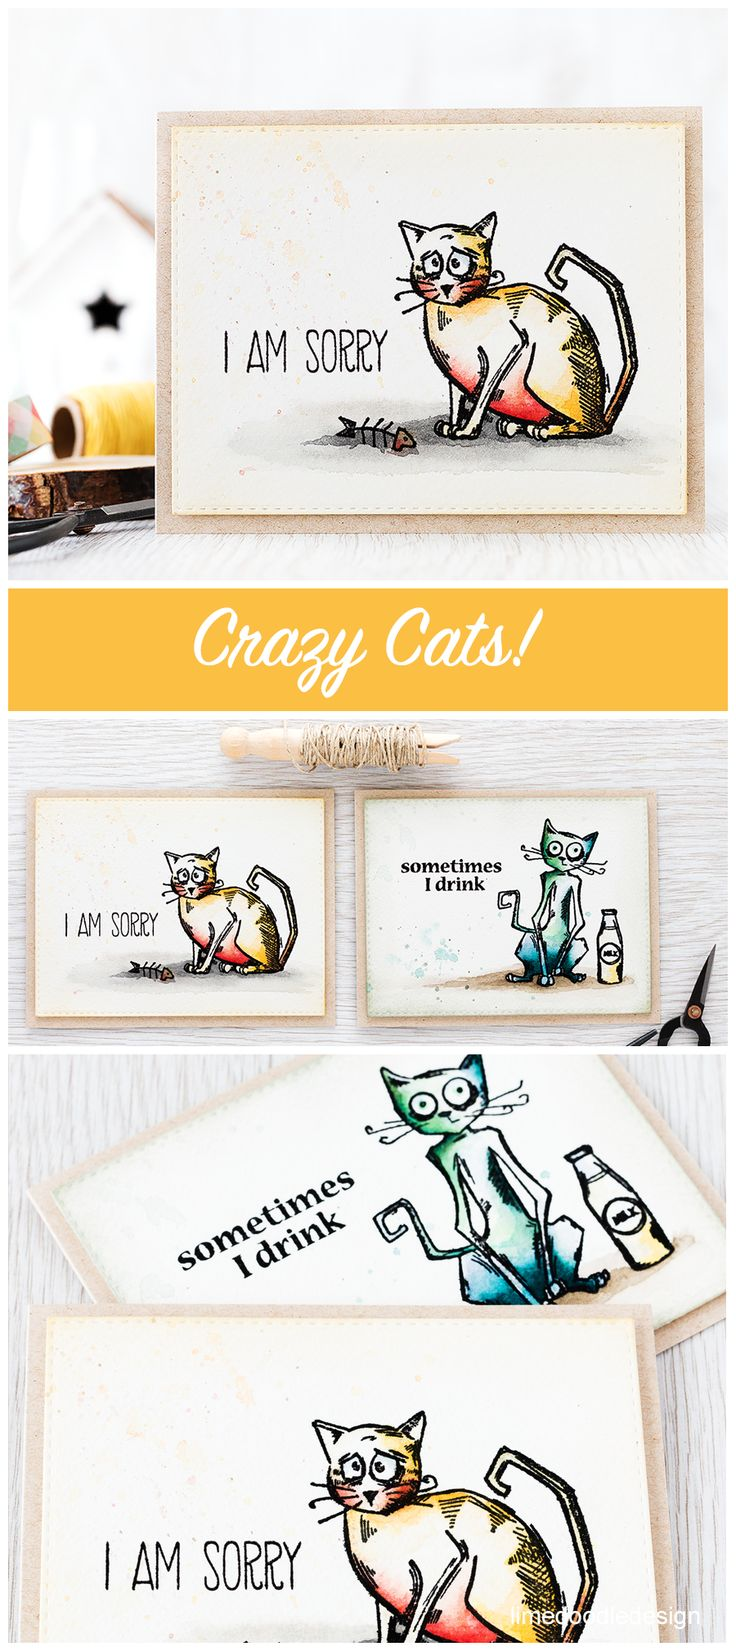 The Crazy Cats from Tim Holtz are so much fun! Find out more by clicking the following link: http://limedoodledesign.com/2016/02/crazy-cats/ cat greeting card fun